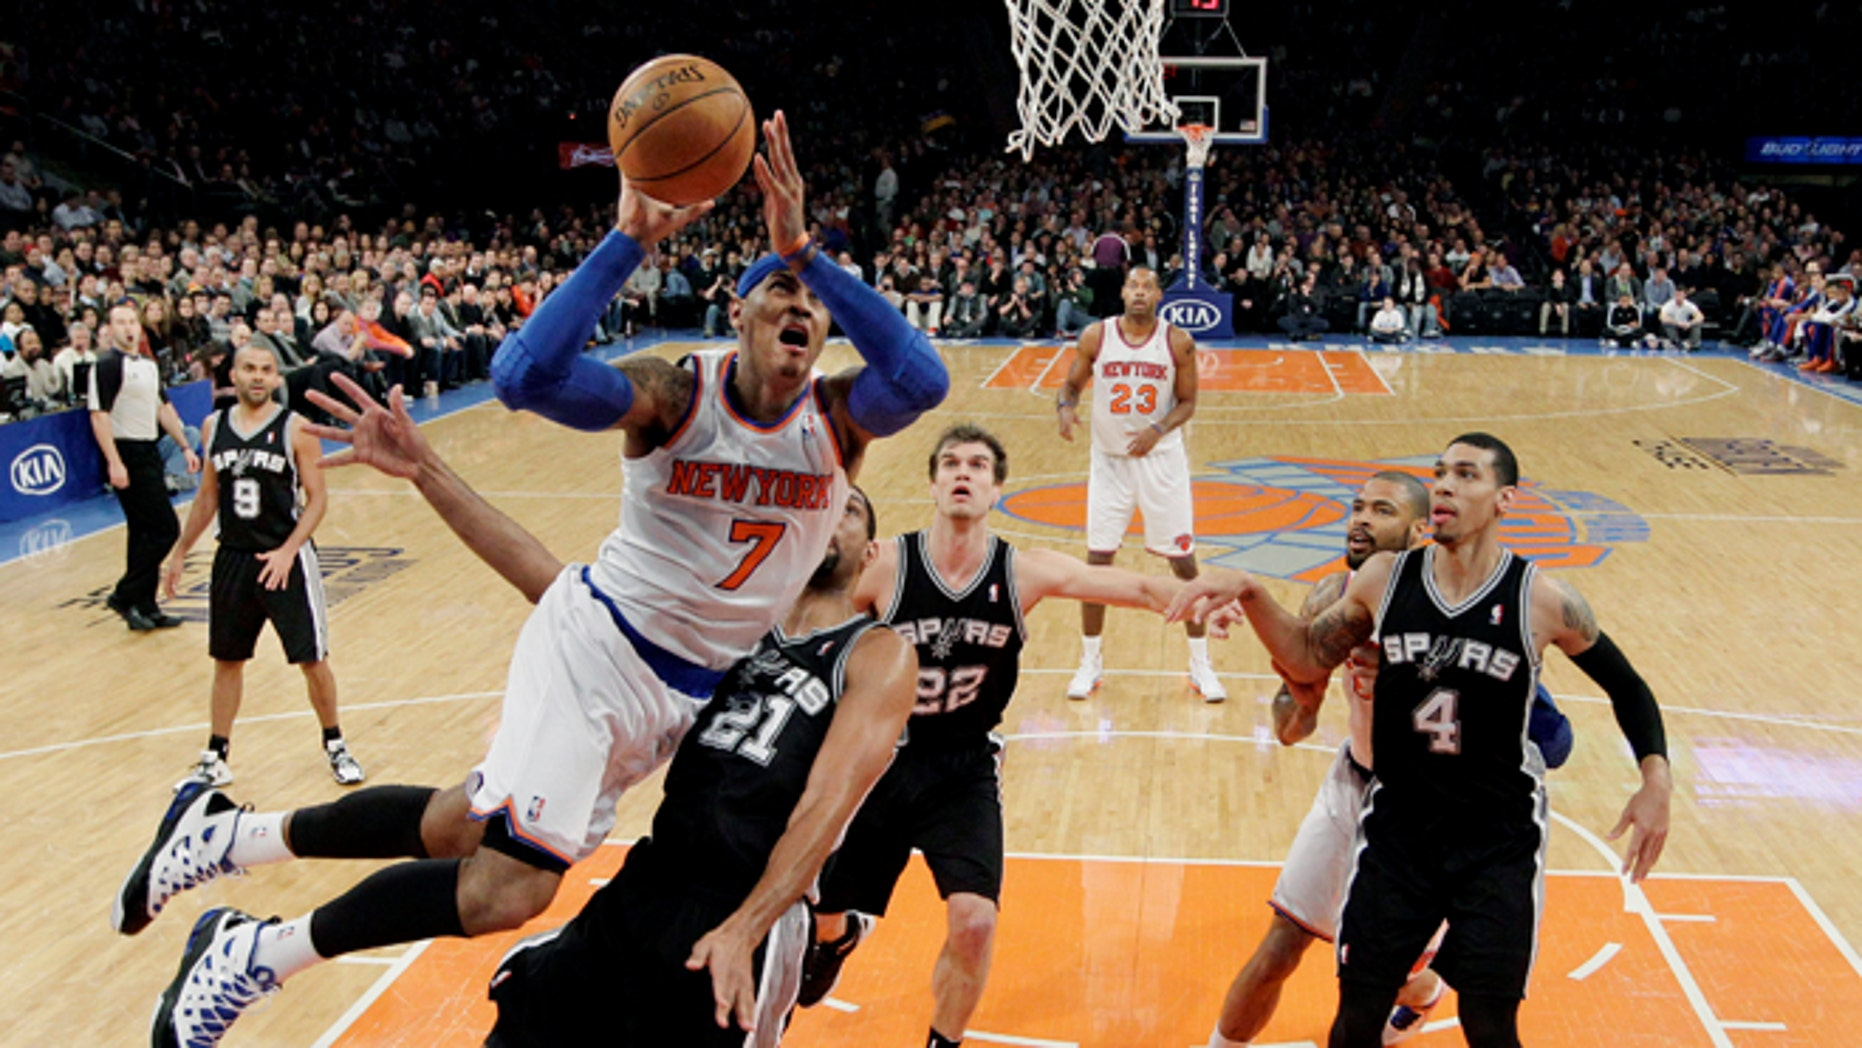 New York Knicks forward Carmelo Anthony (7) shoots a layup against San Antonio Spurs forward Tim Duncan (21) as guard Tony Parker (9), forward Tiago Splitter (22) and guard Danny Green (4) watch in the first half of their NBA basketball game at Madison Square Garden in New York, Thursday, Jan. 3, 2013. Anthony scored 23 points as the Knicks won 100-83. (AP Photo/Kathy Willens)